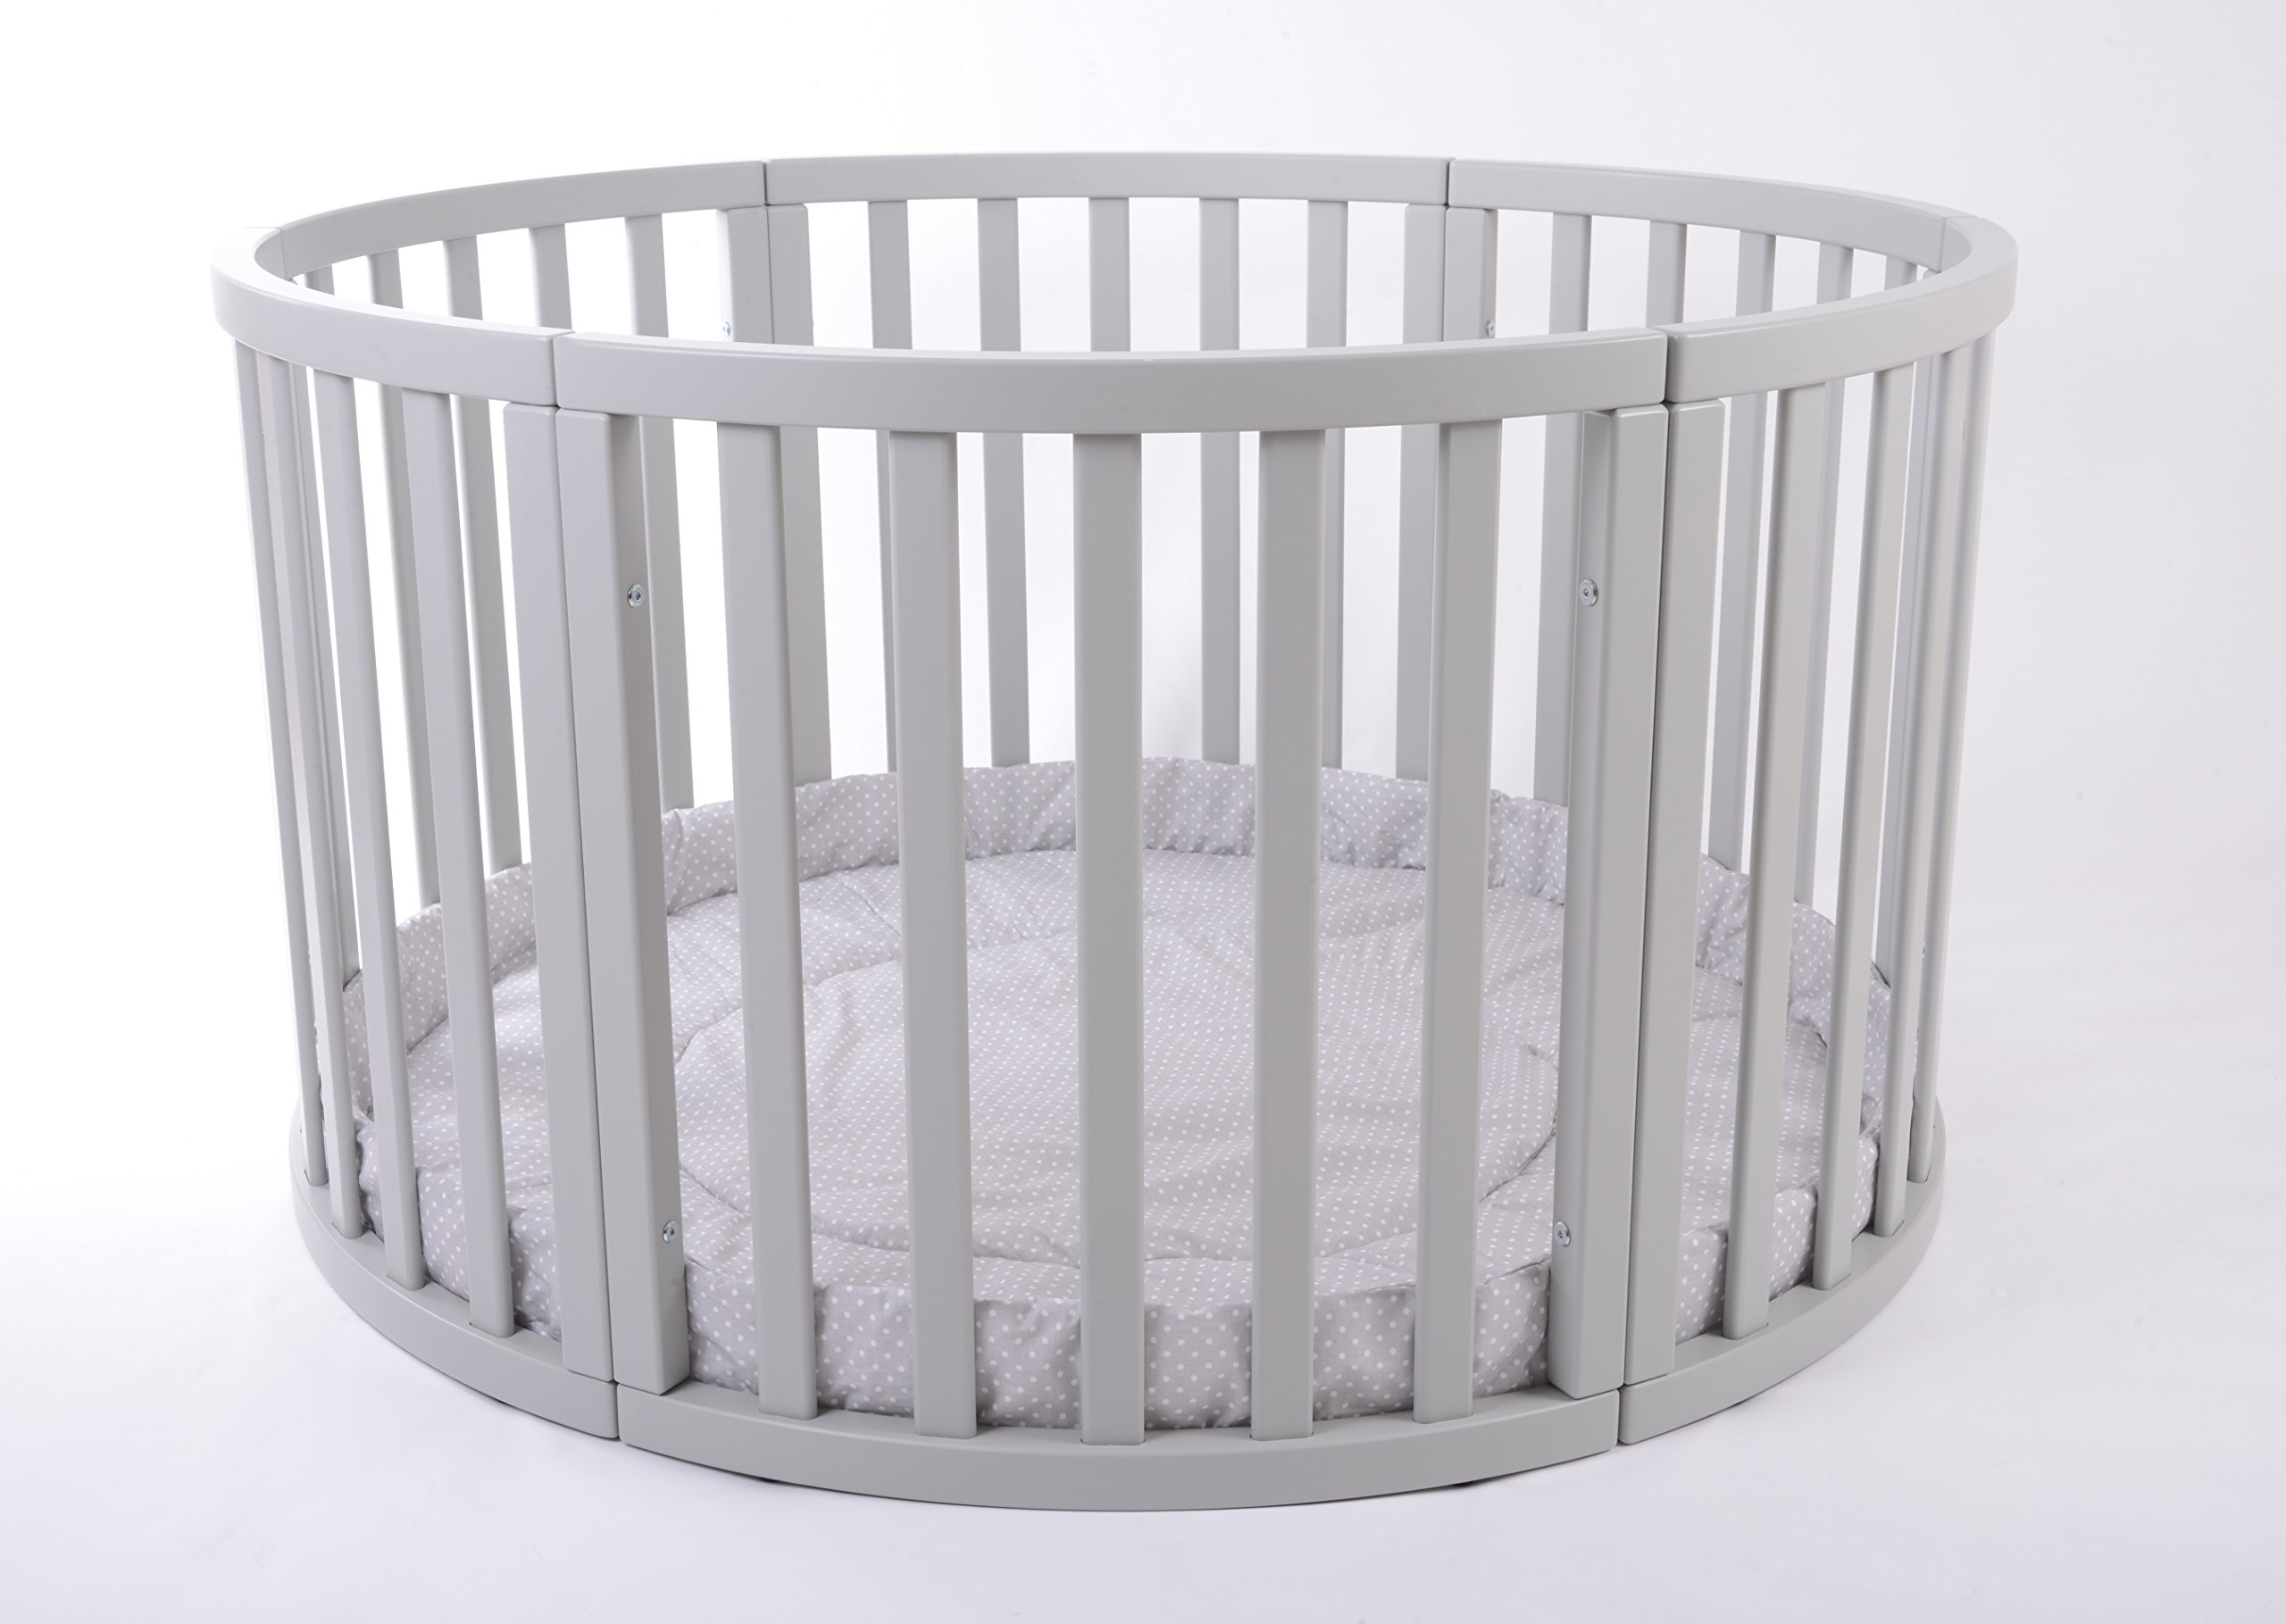 MJmark Round PLAYPEN APOLLO QUATTRO VERY LARGE Wooden play pen with play-mat SALE SALE (Grey Polka Dots) MJmark Height 70 cm approx; Ø 120cm including Playmat made from solid hard wood (Birch) 2